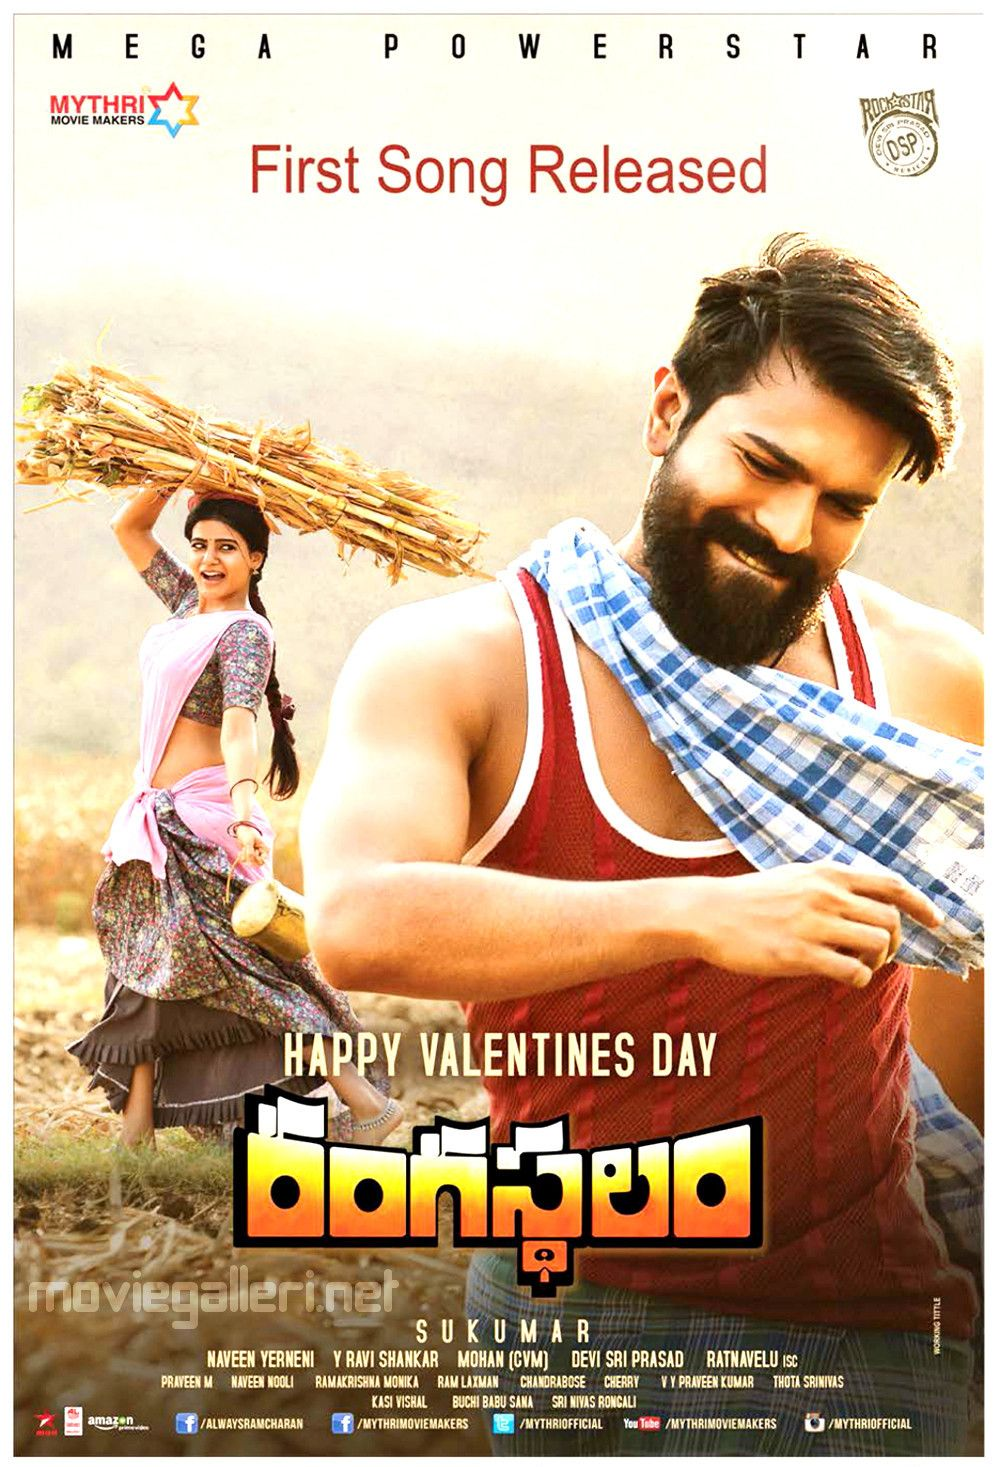 Rangasthalam Movie Valentine S Day Special Poster Download Free Movies Online Full Movies Online Free India Actor